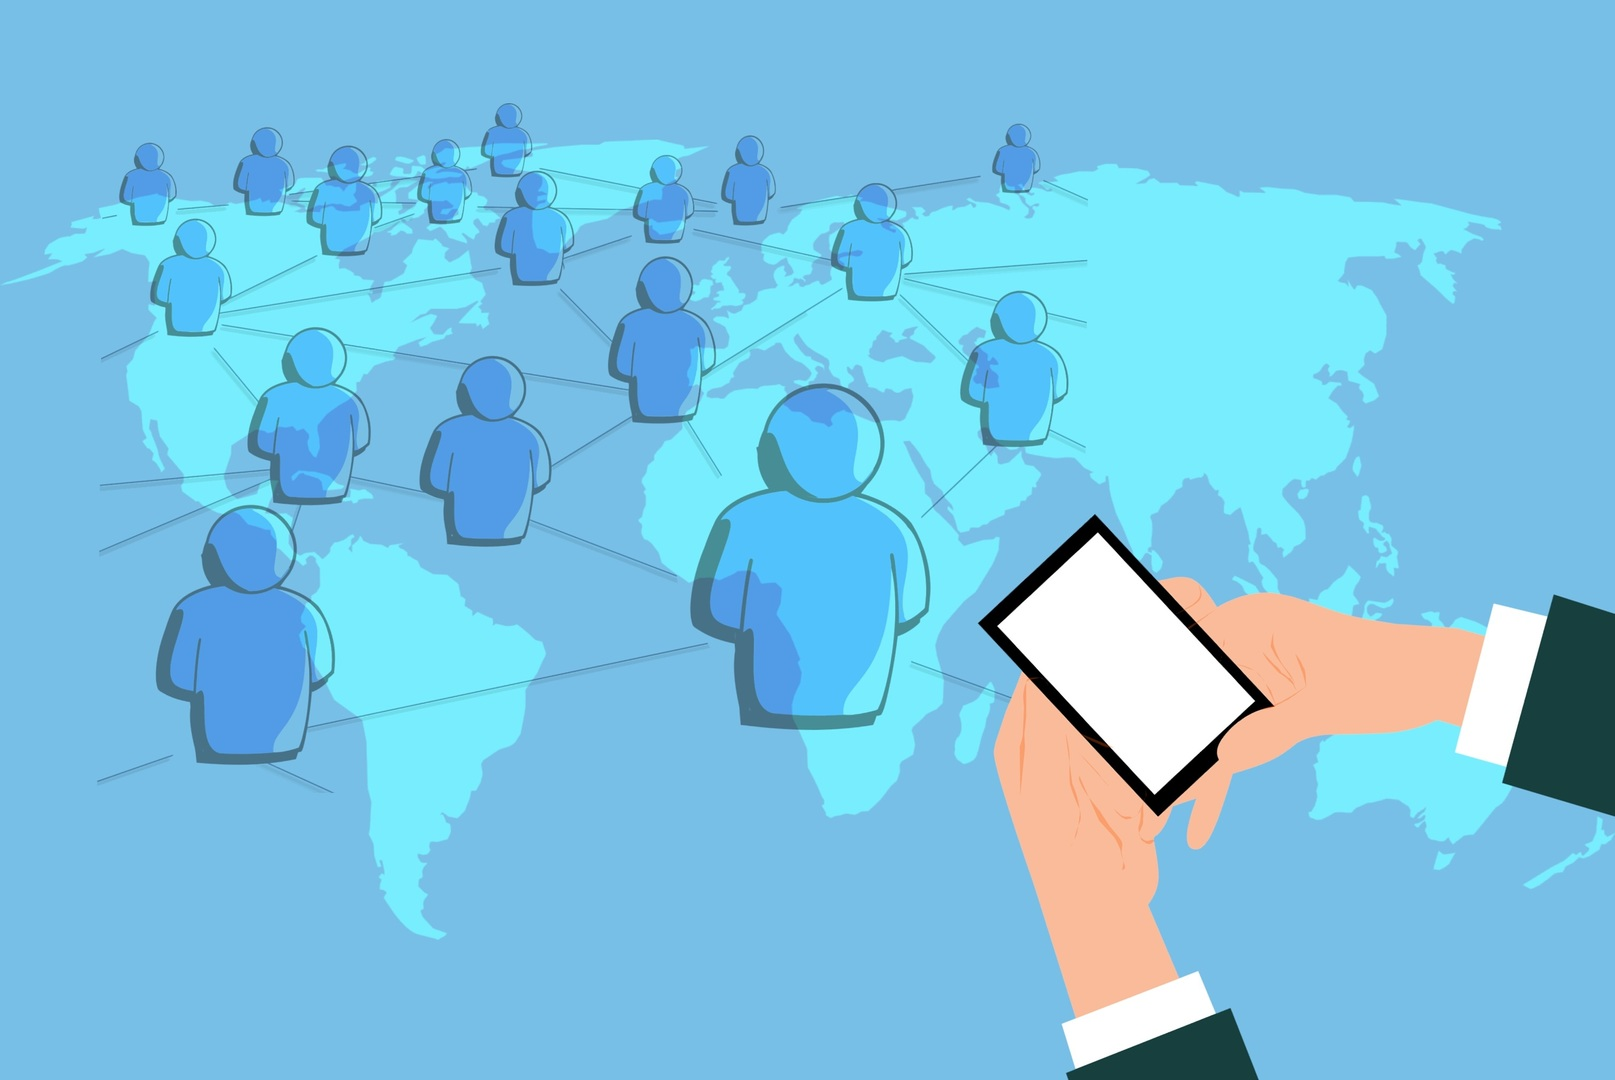 network digital marketing share mobile social media avatar 1451419 pxhere.com  - The Sharing Economy: Experiences over Ownership